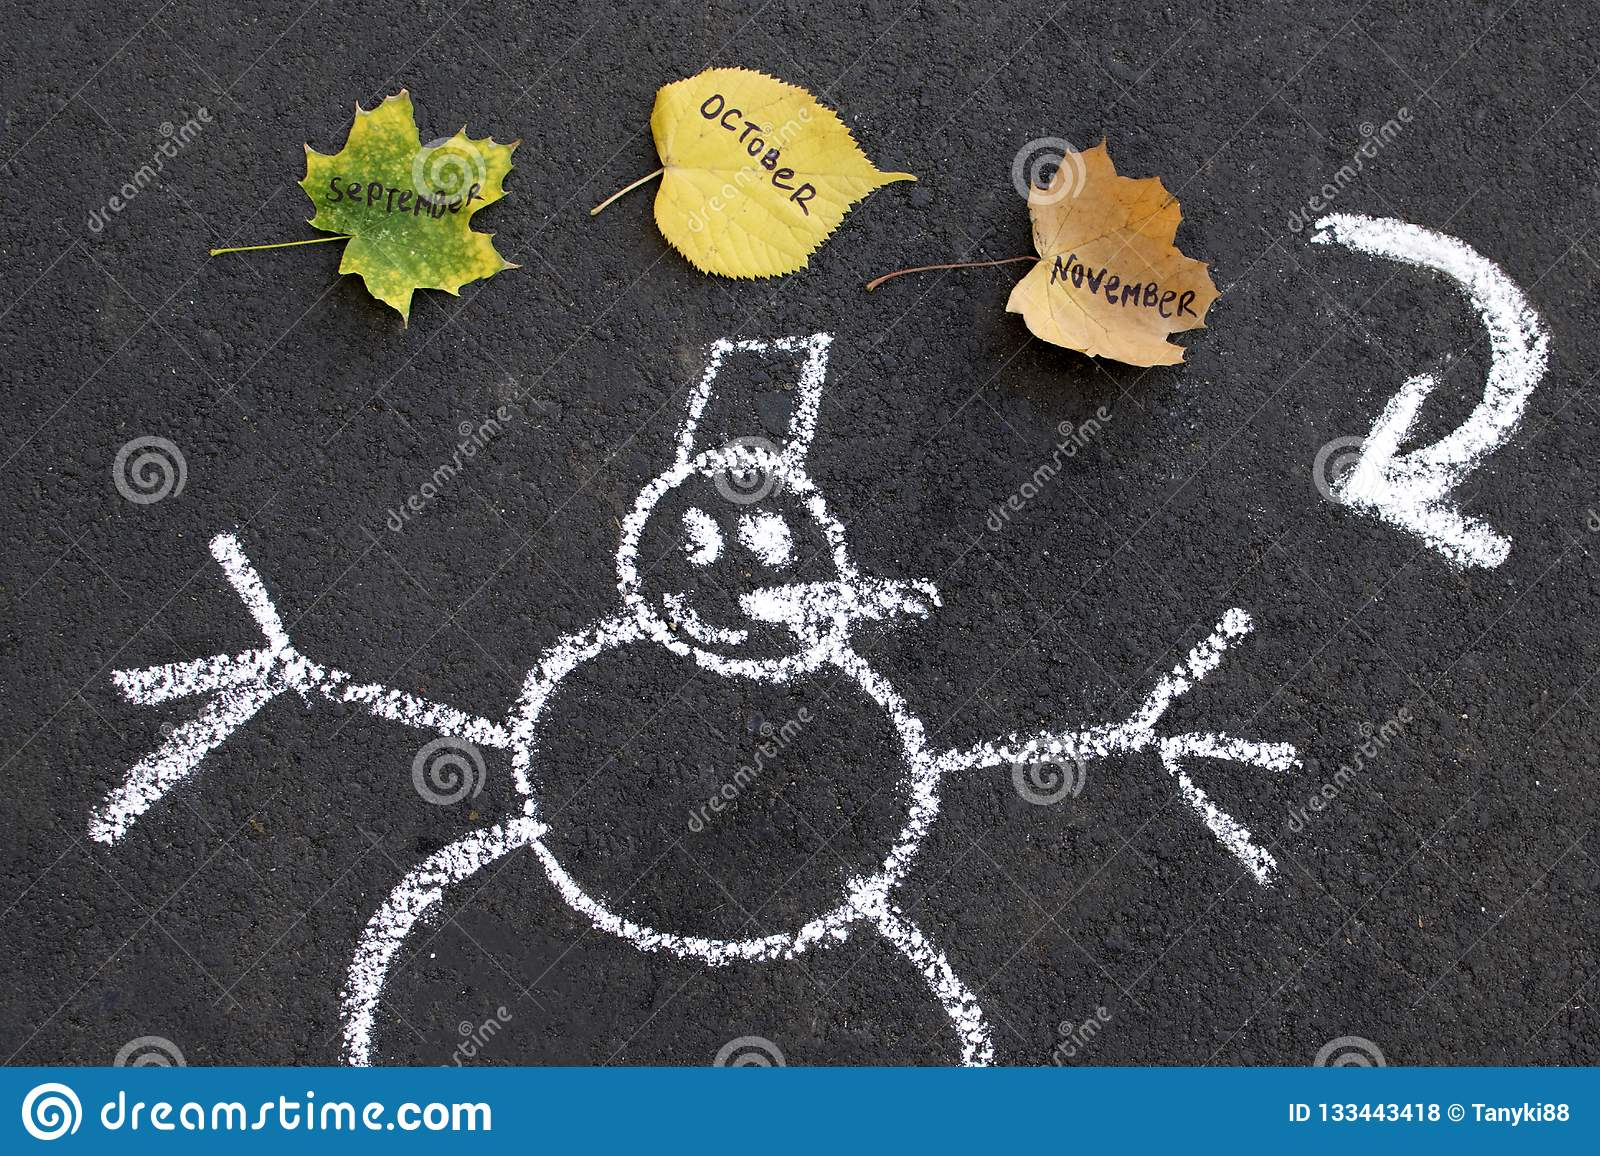 Snowman and autumn leaves seasons change